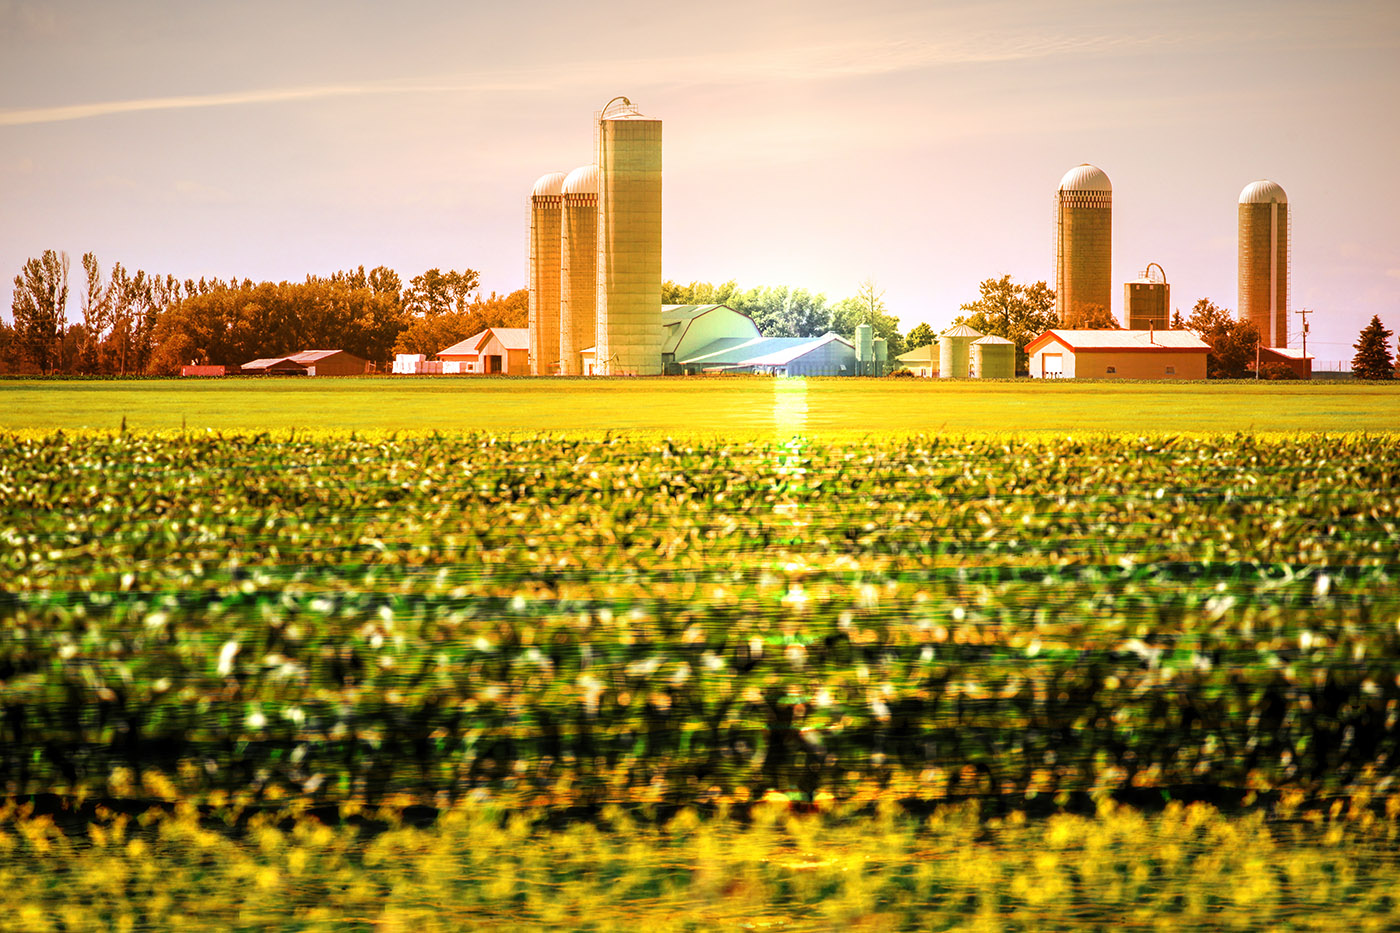 Modern Farmland and Agriculture Real Estate - Stock Photography